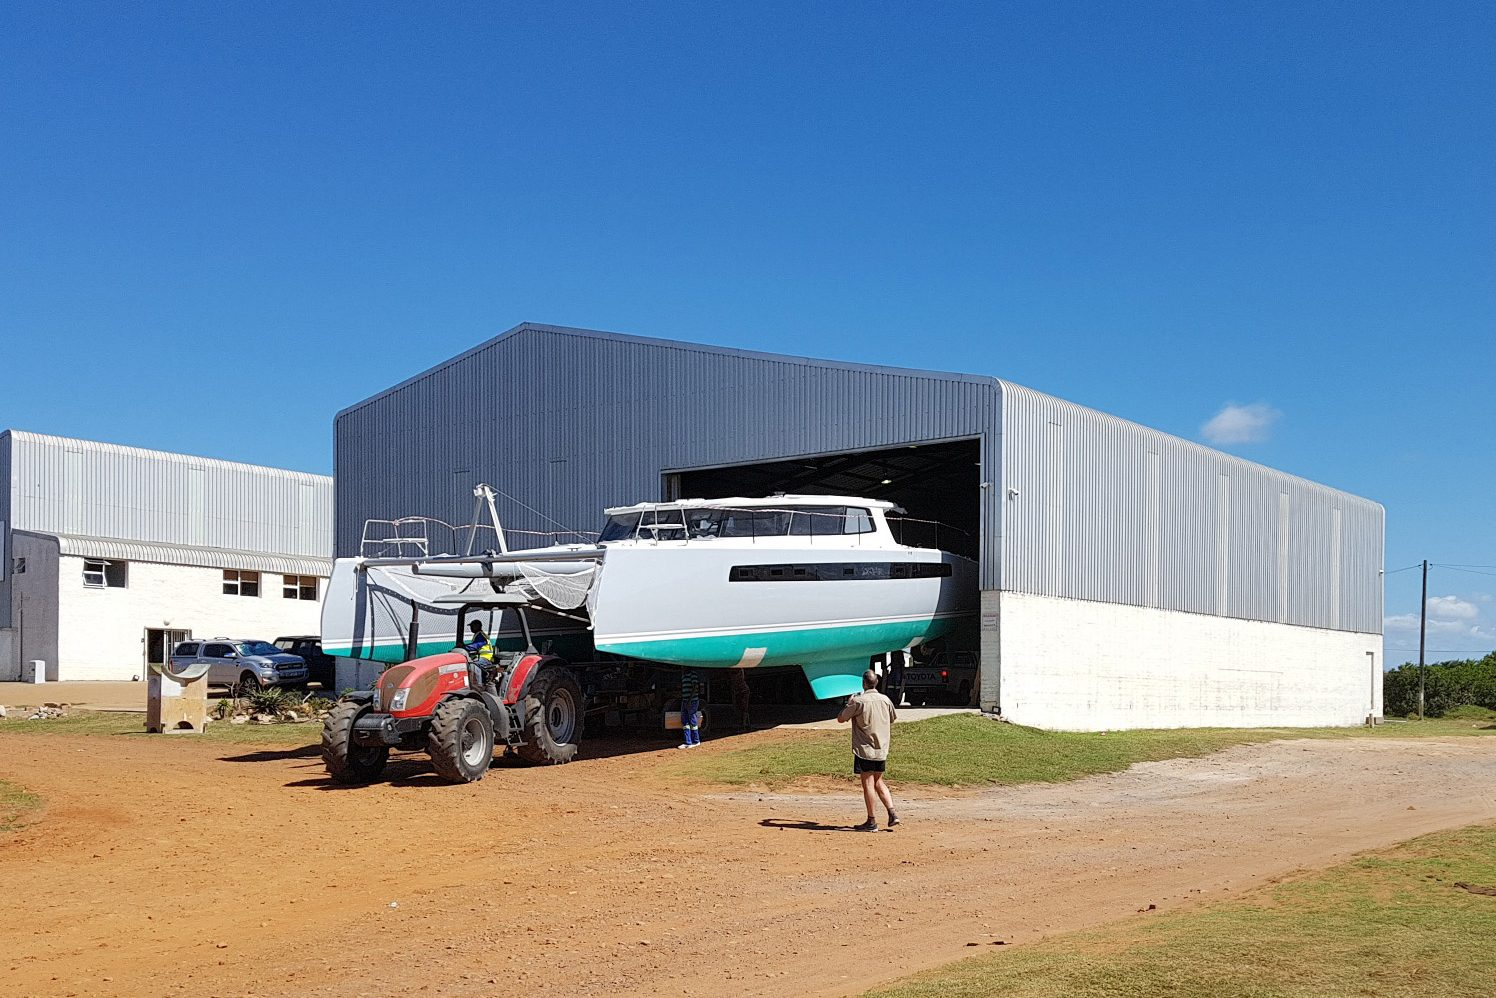 Balance catamarans, balance 526, nexus yachts, south africa, catamaran, yacht, boat launch